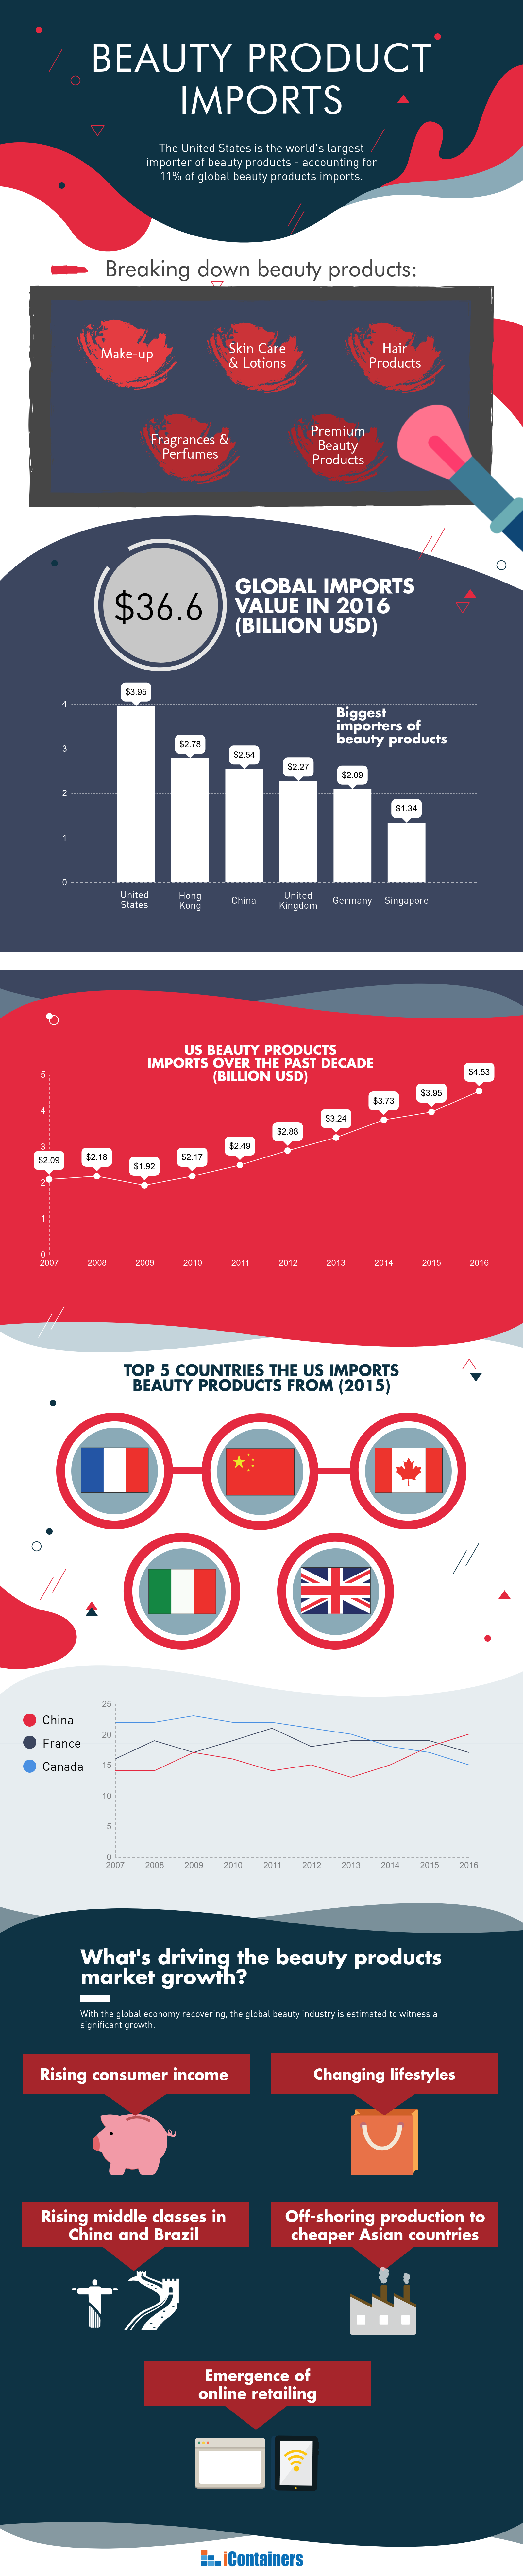 us-beauty-products-imports-infographic